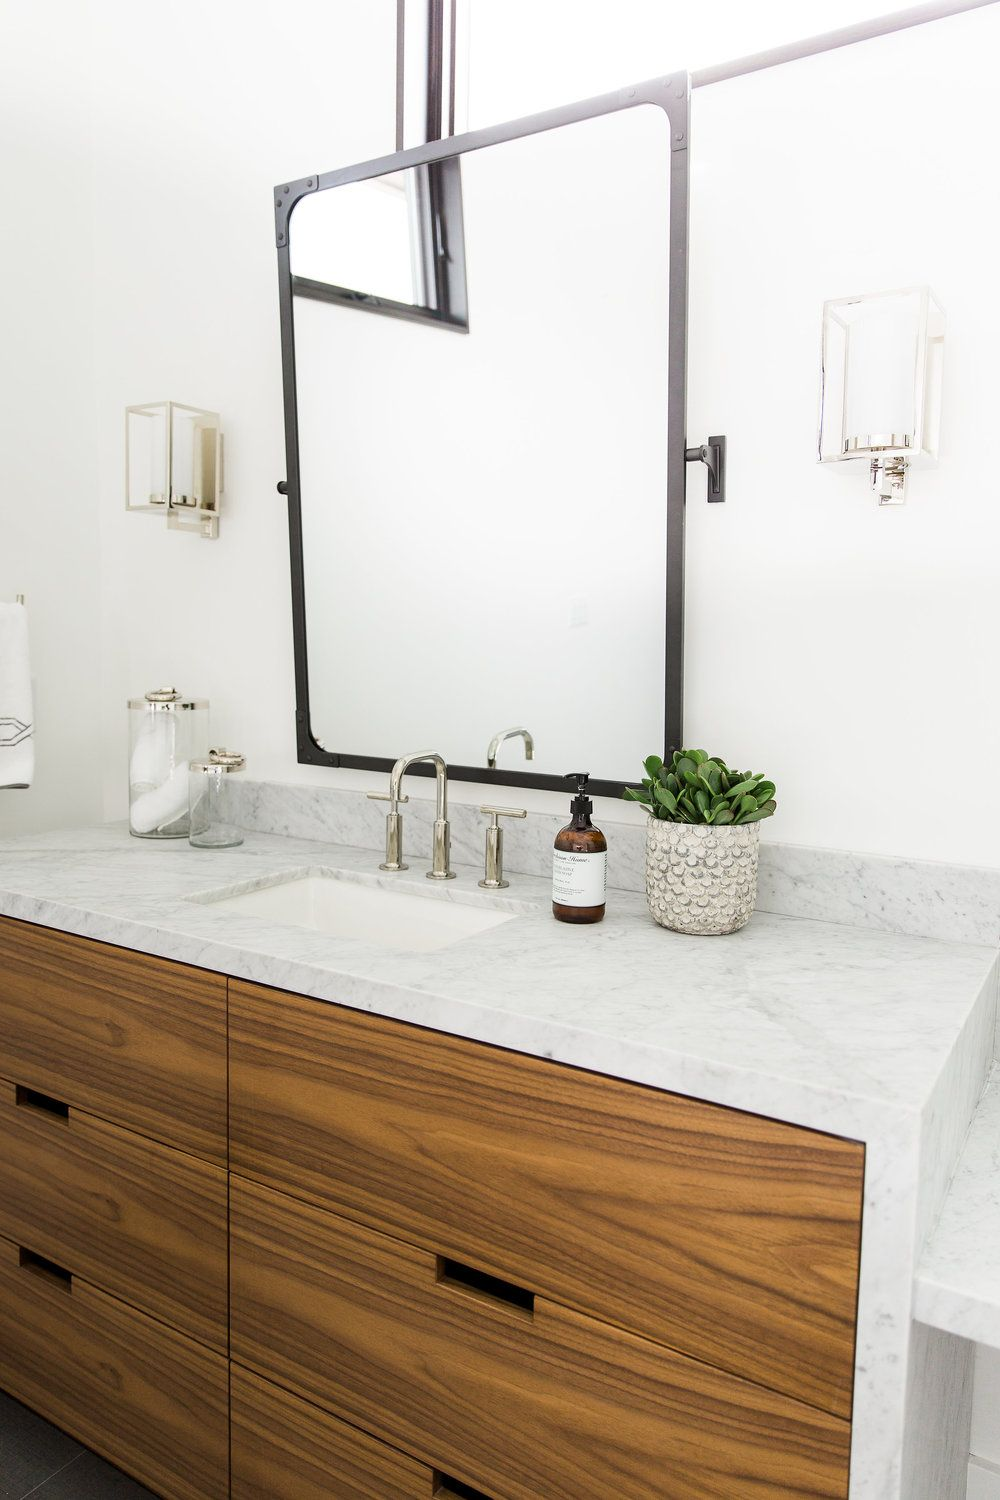 carrera marble countertops waterfall edge on bathroom vanity studio mcgee